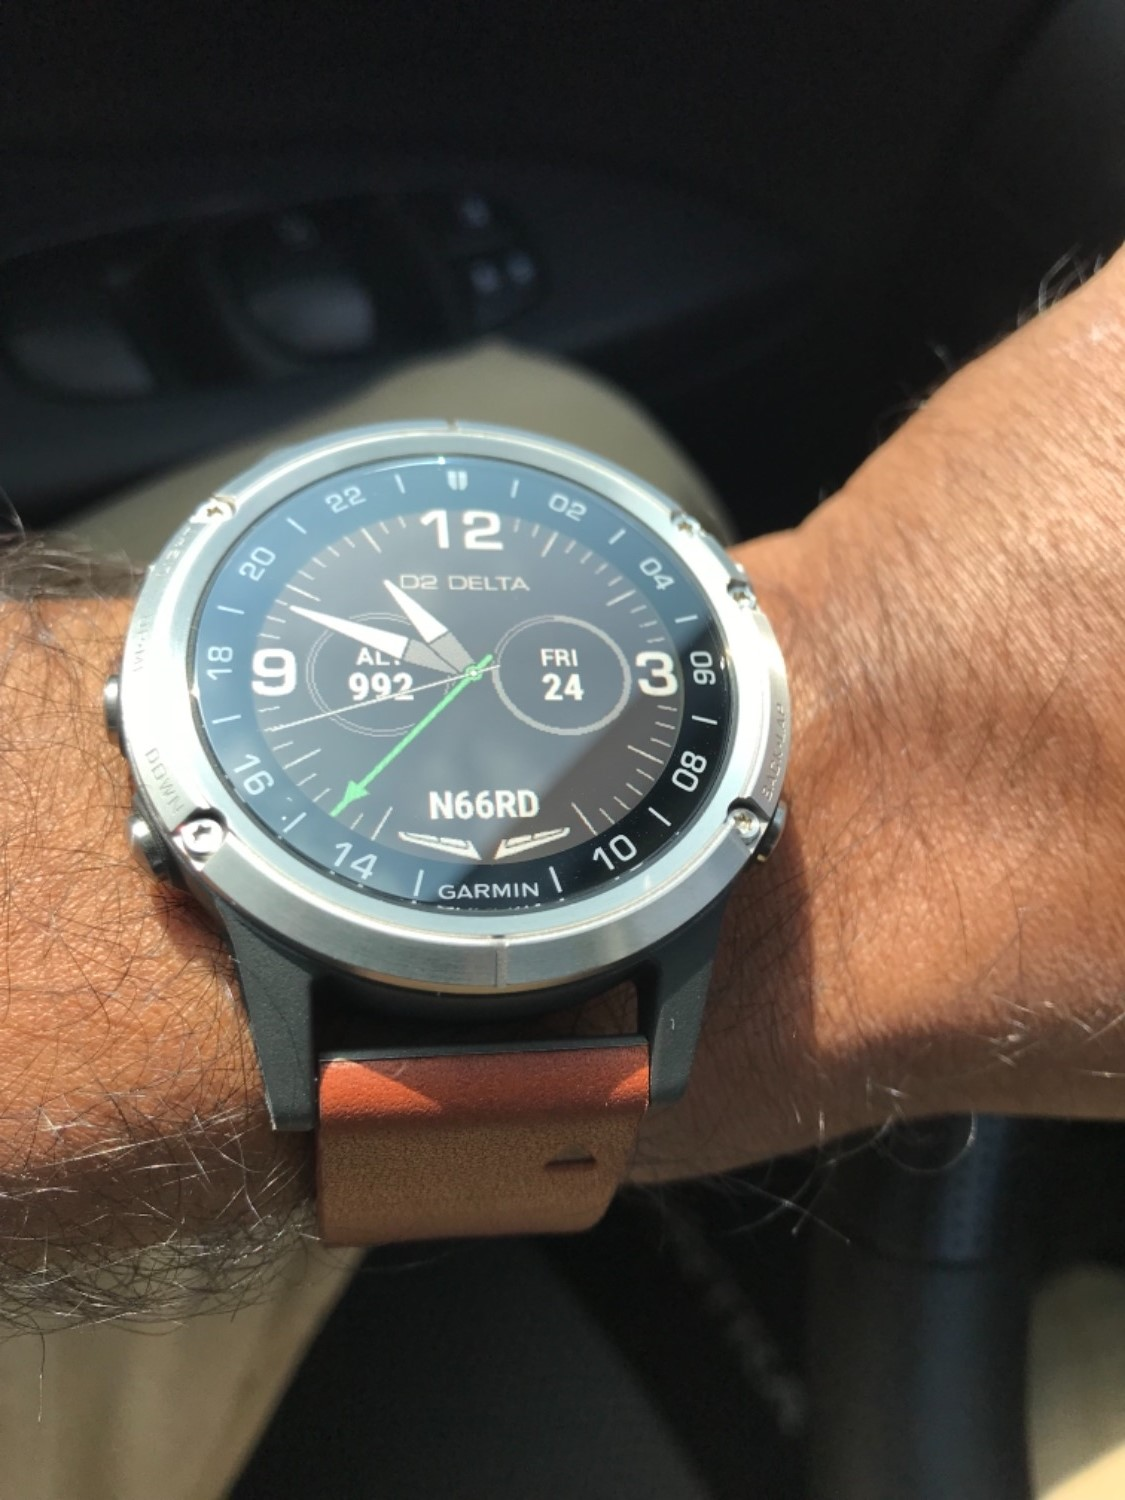 292b02c2086 ... Krishna B. verified customer review of Garmin D2 Delta Aviator Watch  with Brown Leather Band